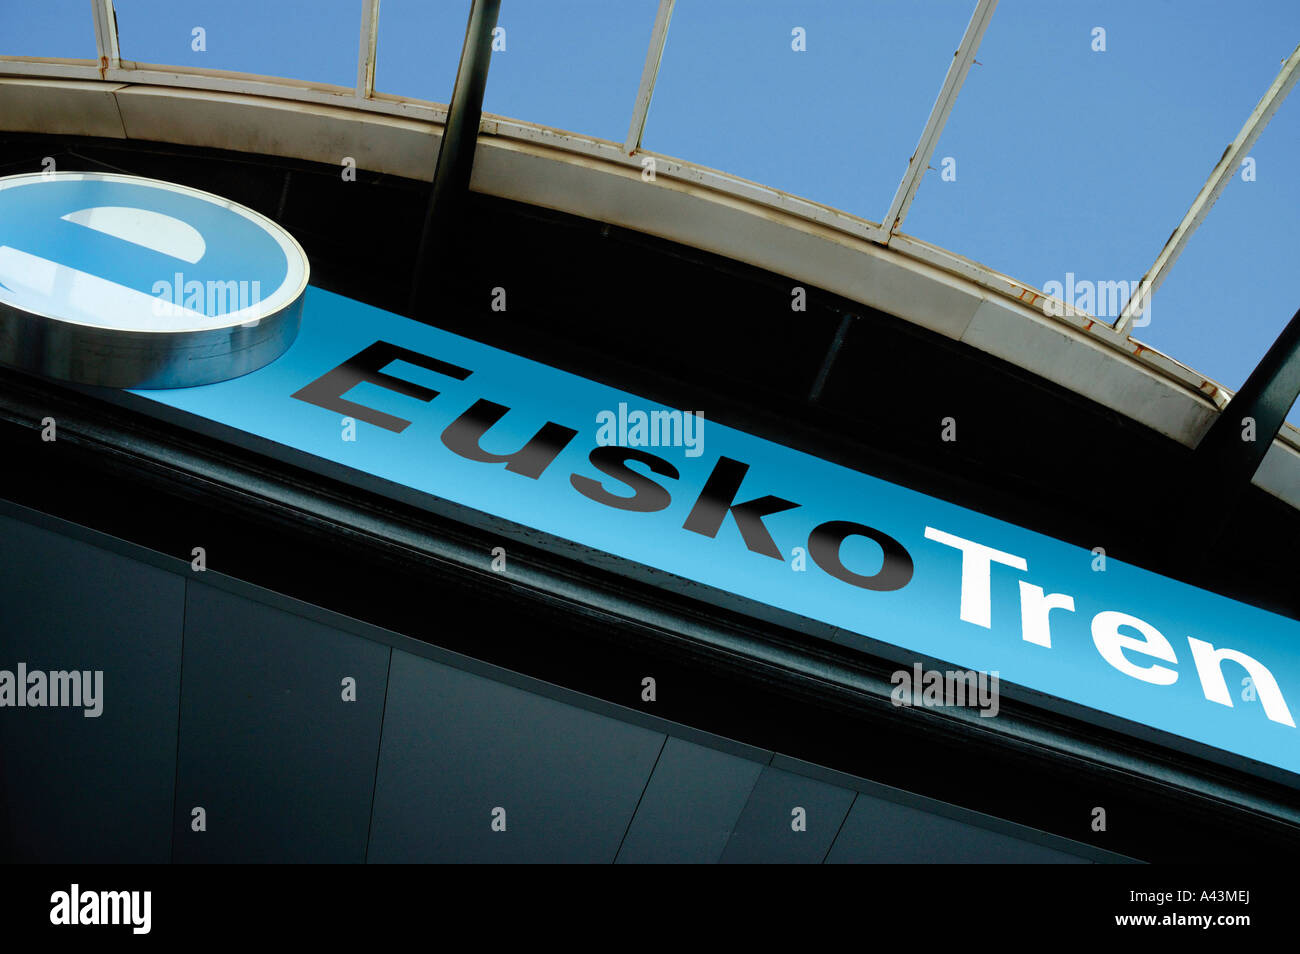 EUSKOTREN SIGN BASQUE COUNTRY SPAIN - Stock Image